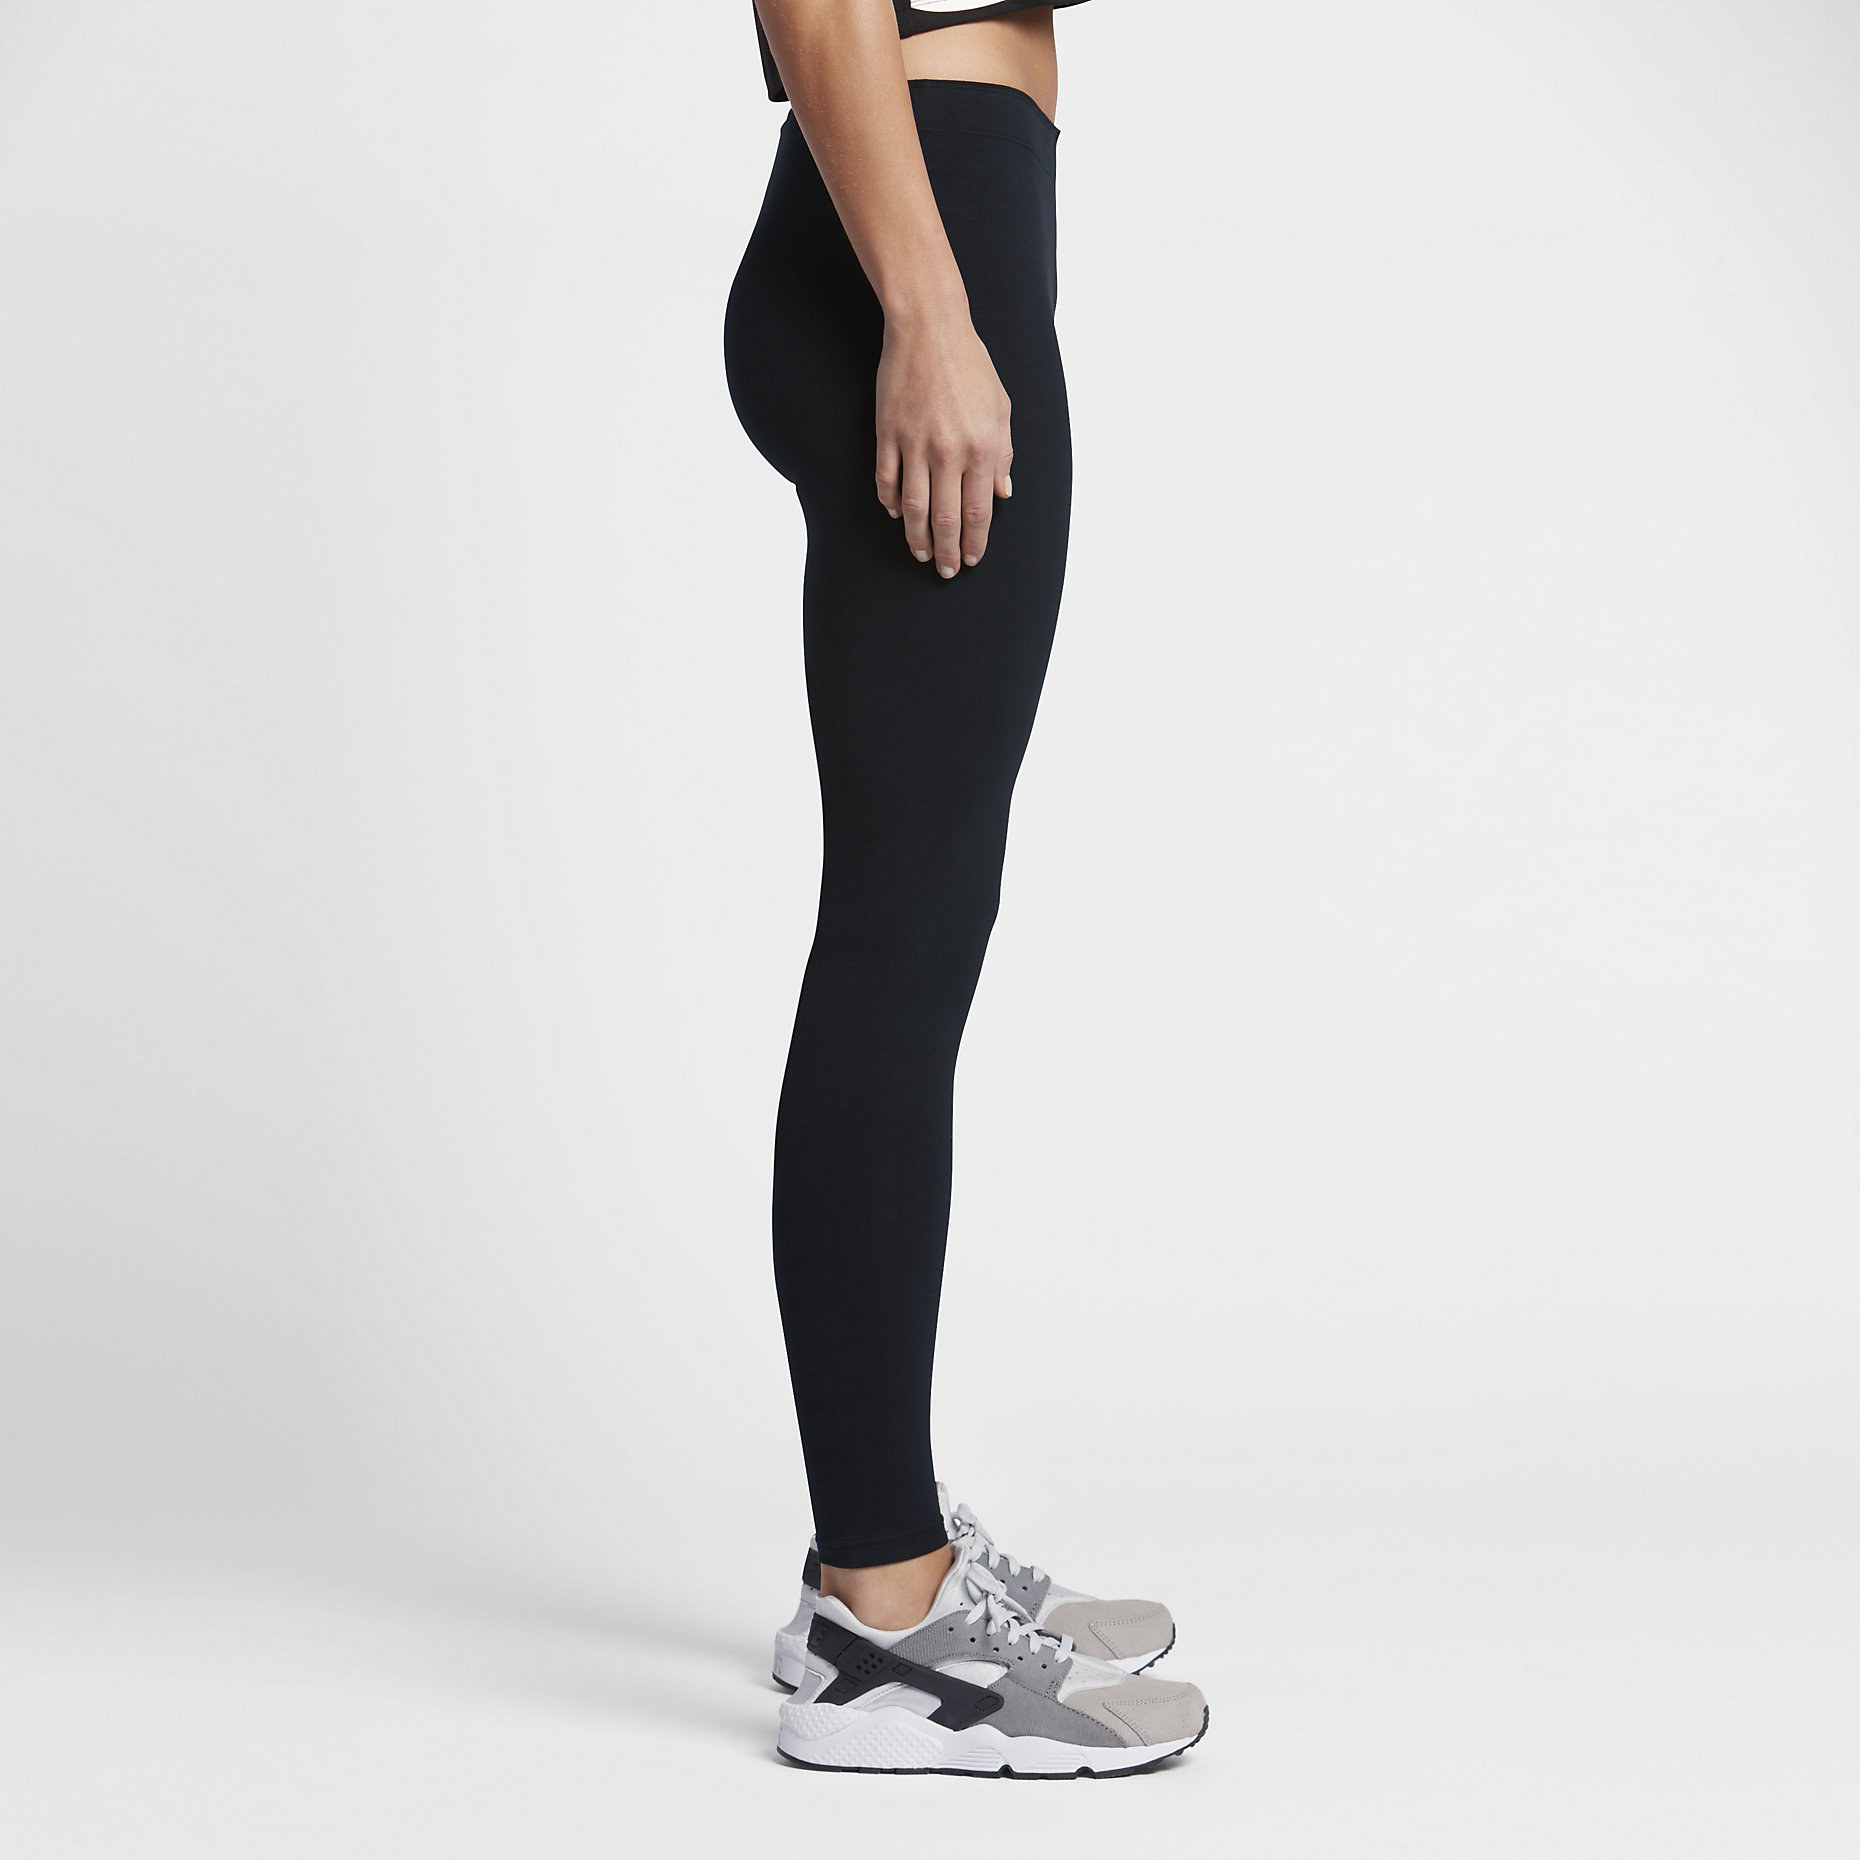 Shop the latest selection of womens nike leggings at Lady Foot Locker. With stores across the nation, and some of the hottest brands and latest trends, Lady Footlocker makes it easy to find great footwear and apparel for women all in one place. Free shipping on select products.